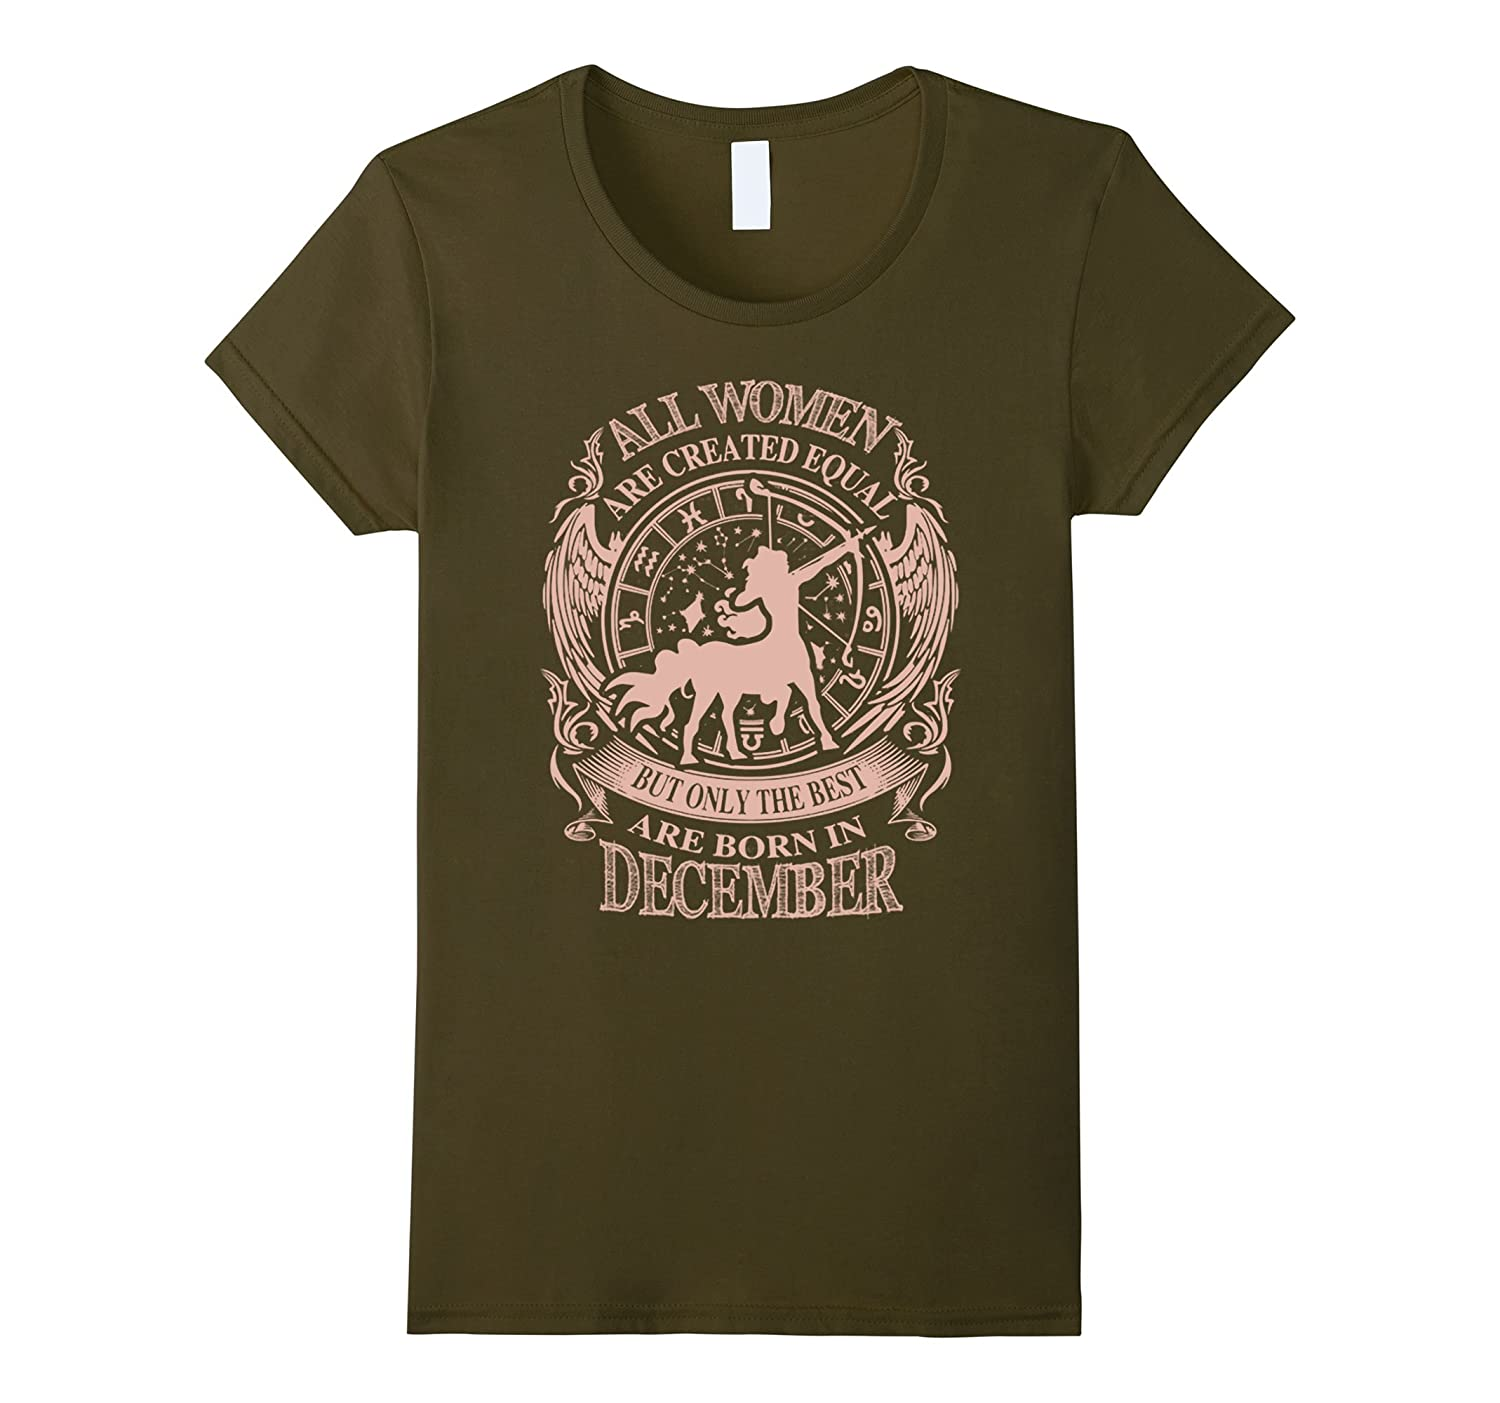 All WoMen Are The Best Are Born In December Shirt-Art